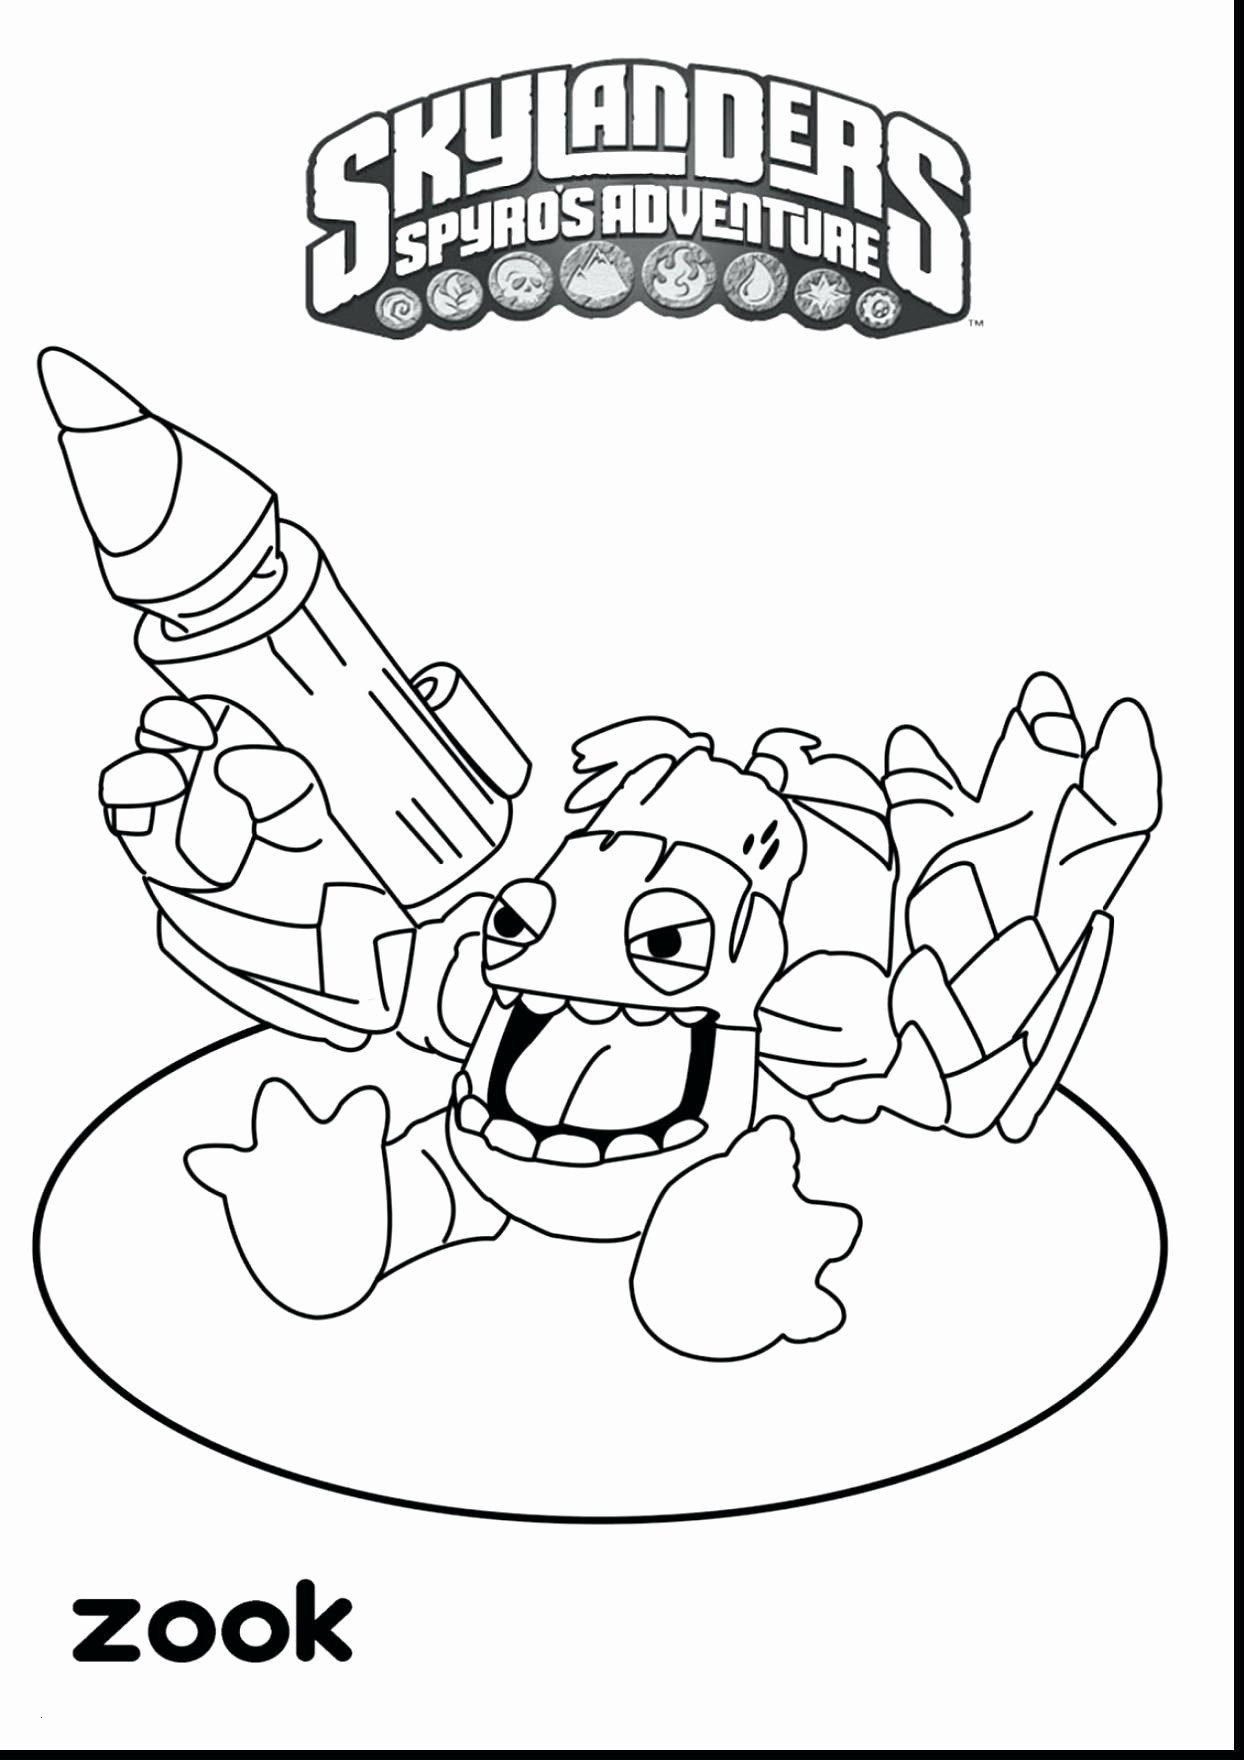 Baking Coloring Pages  Printable 20j - Save it to your computer